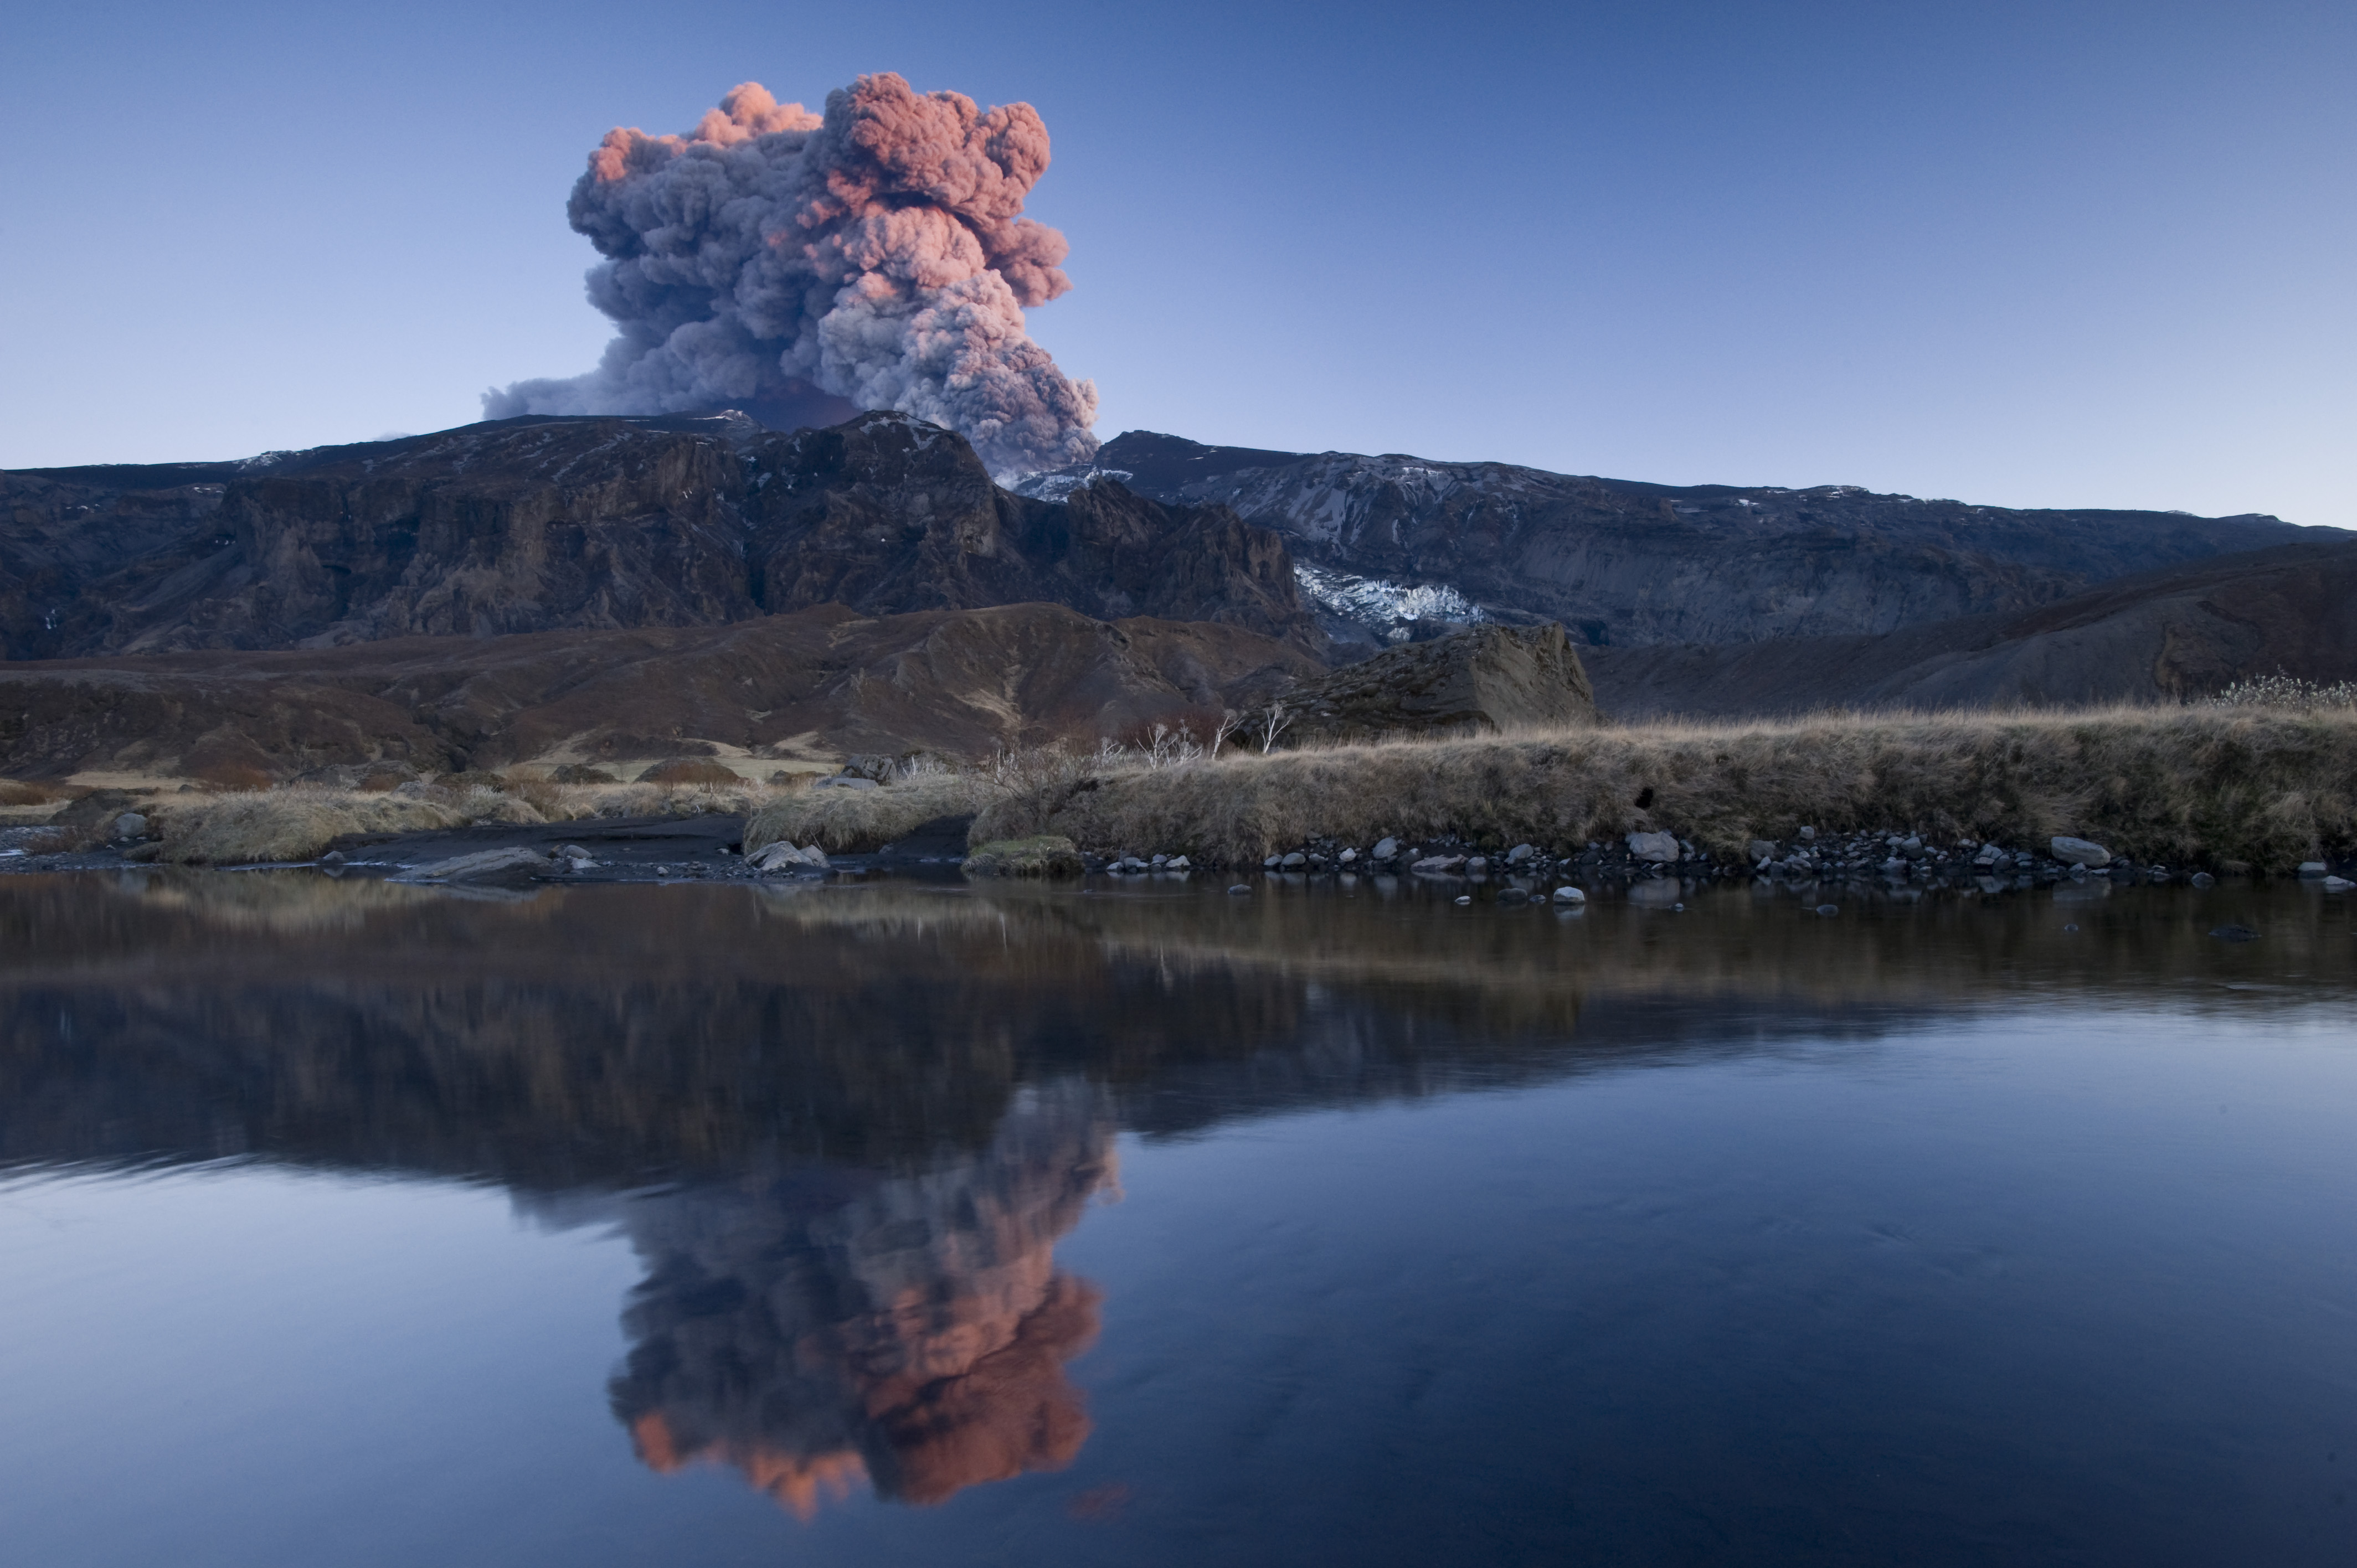 Eyjafjallajokull erupts, producing a cloud of vapor on May 10, 2010 in Iceland.